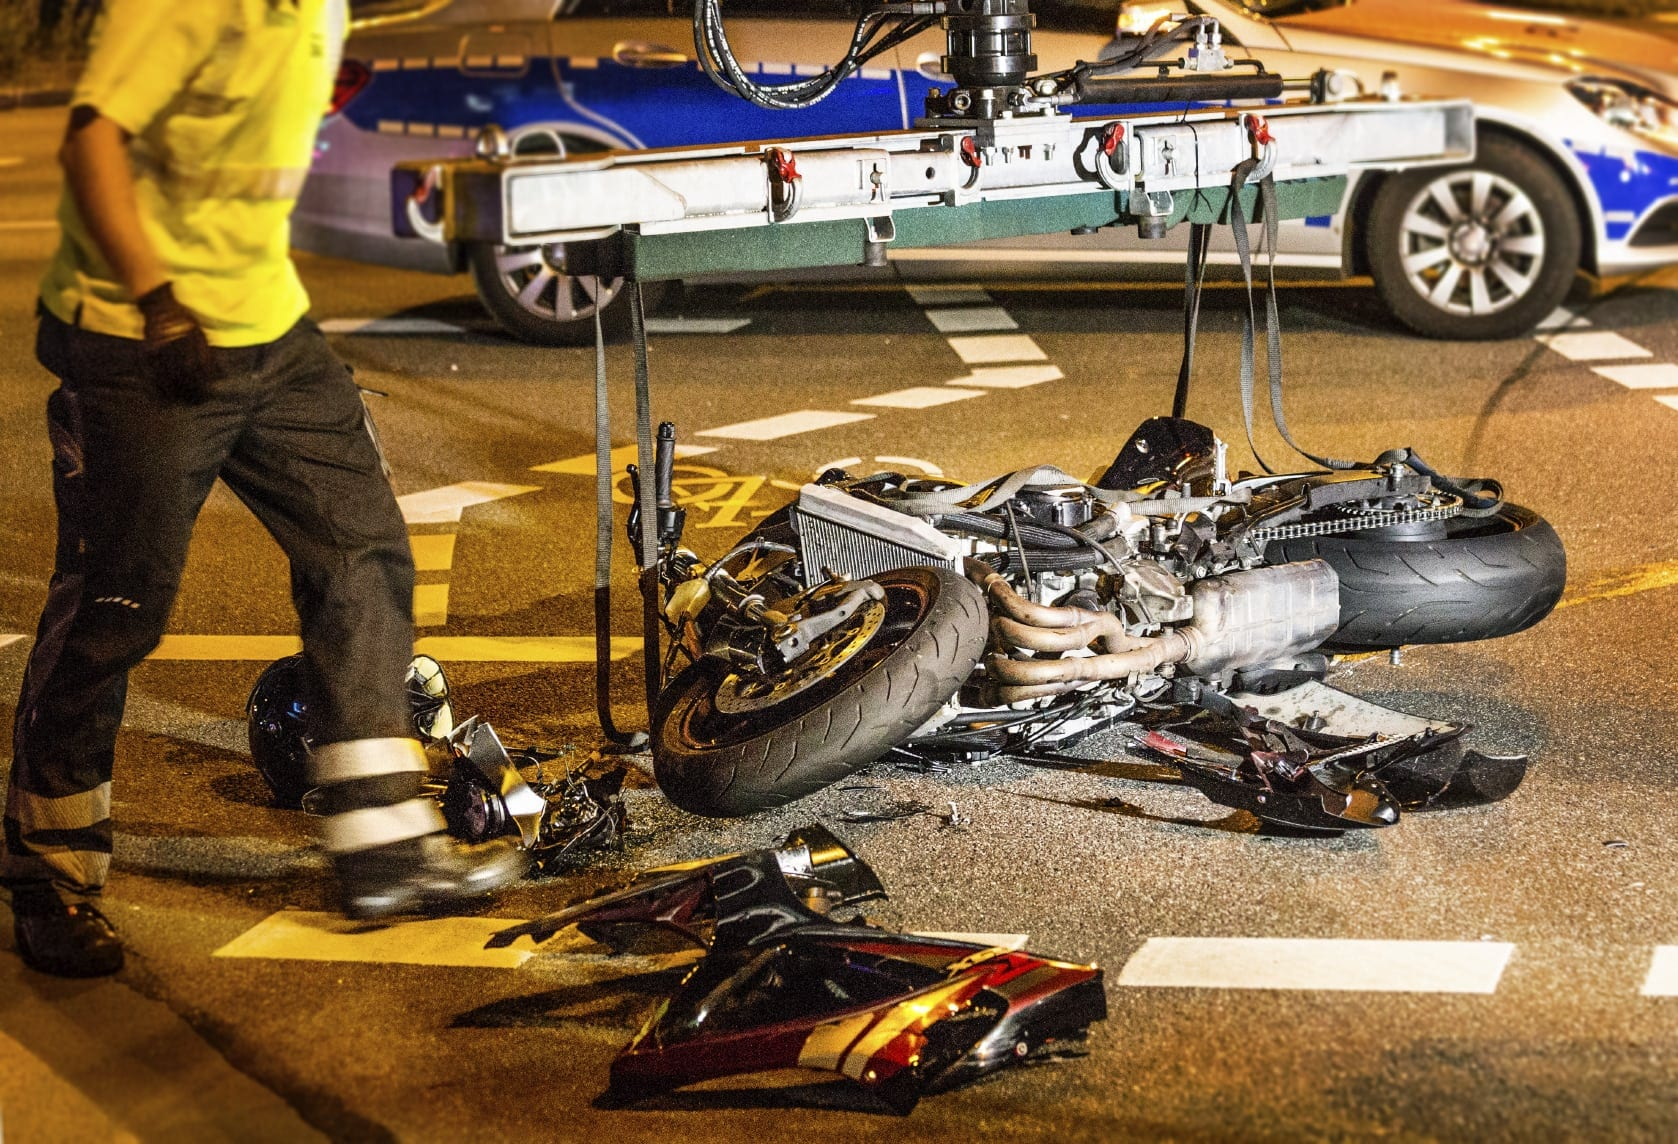 Aftermath Of A Motorcycle Accident Stock Photo